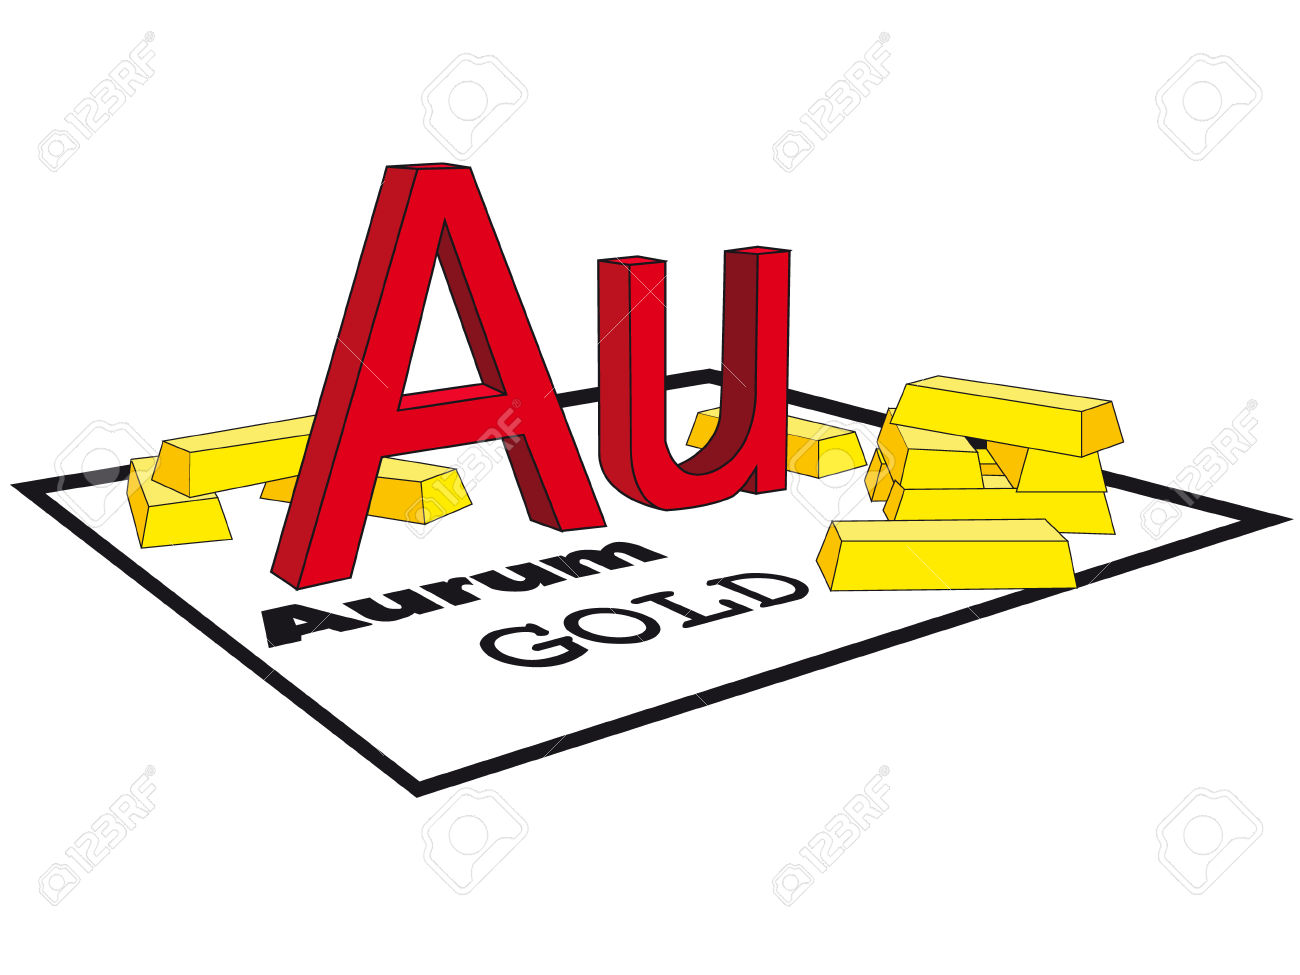 Gold periodic table symbol clipart clipground gold periodic table symbol clipart gamestrikefo Image collections